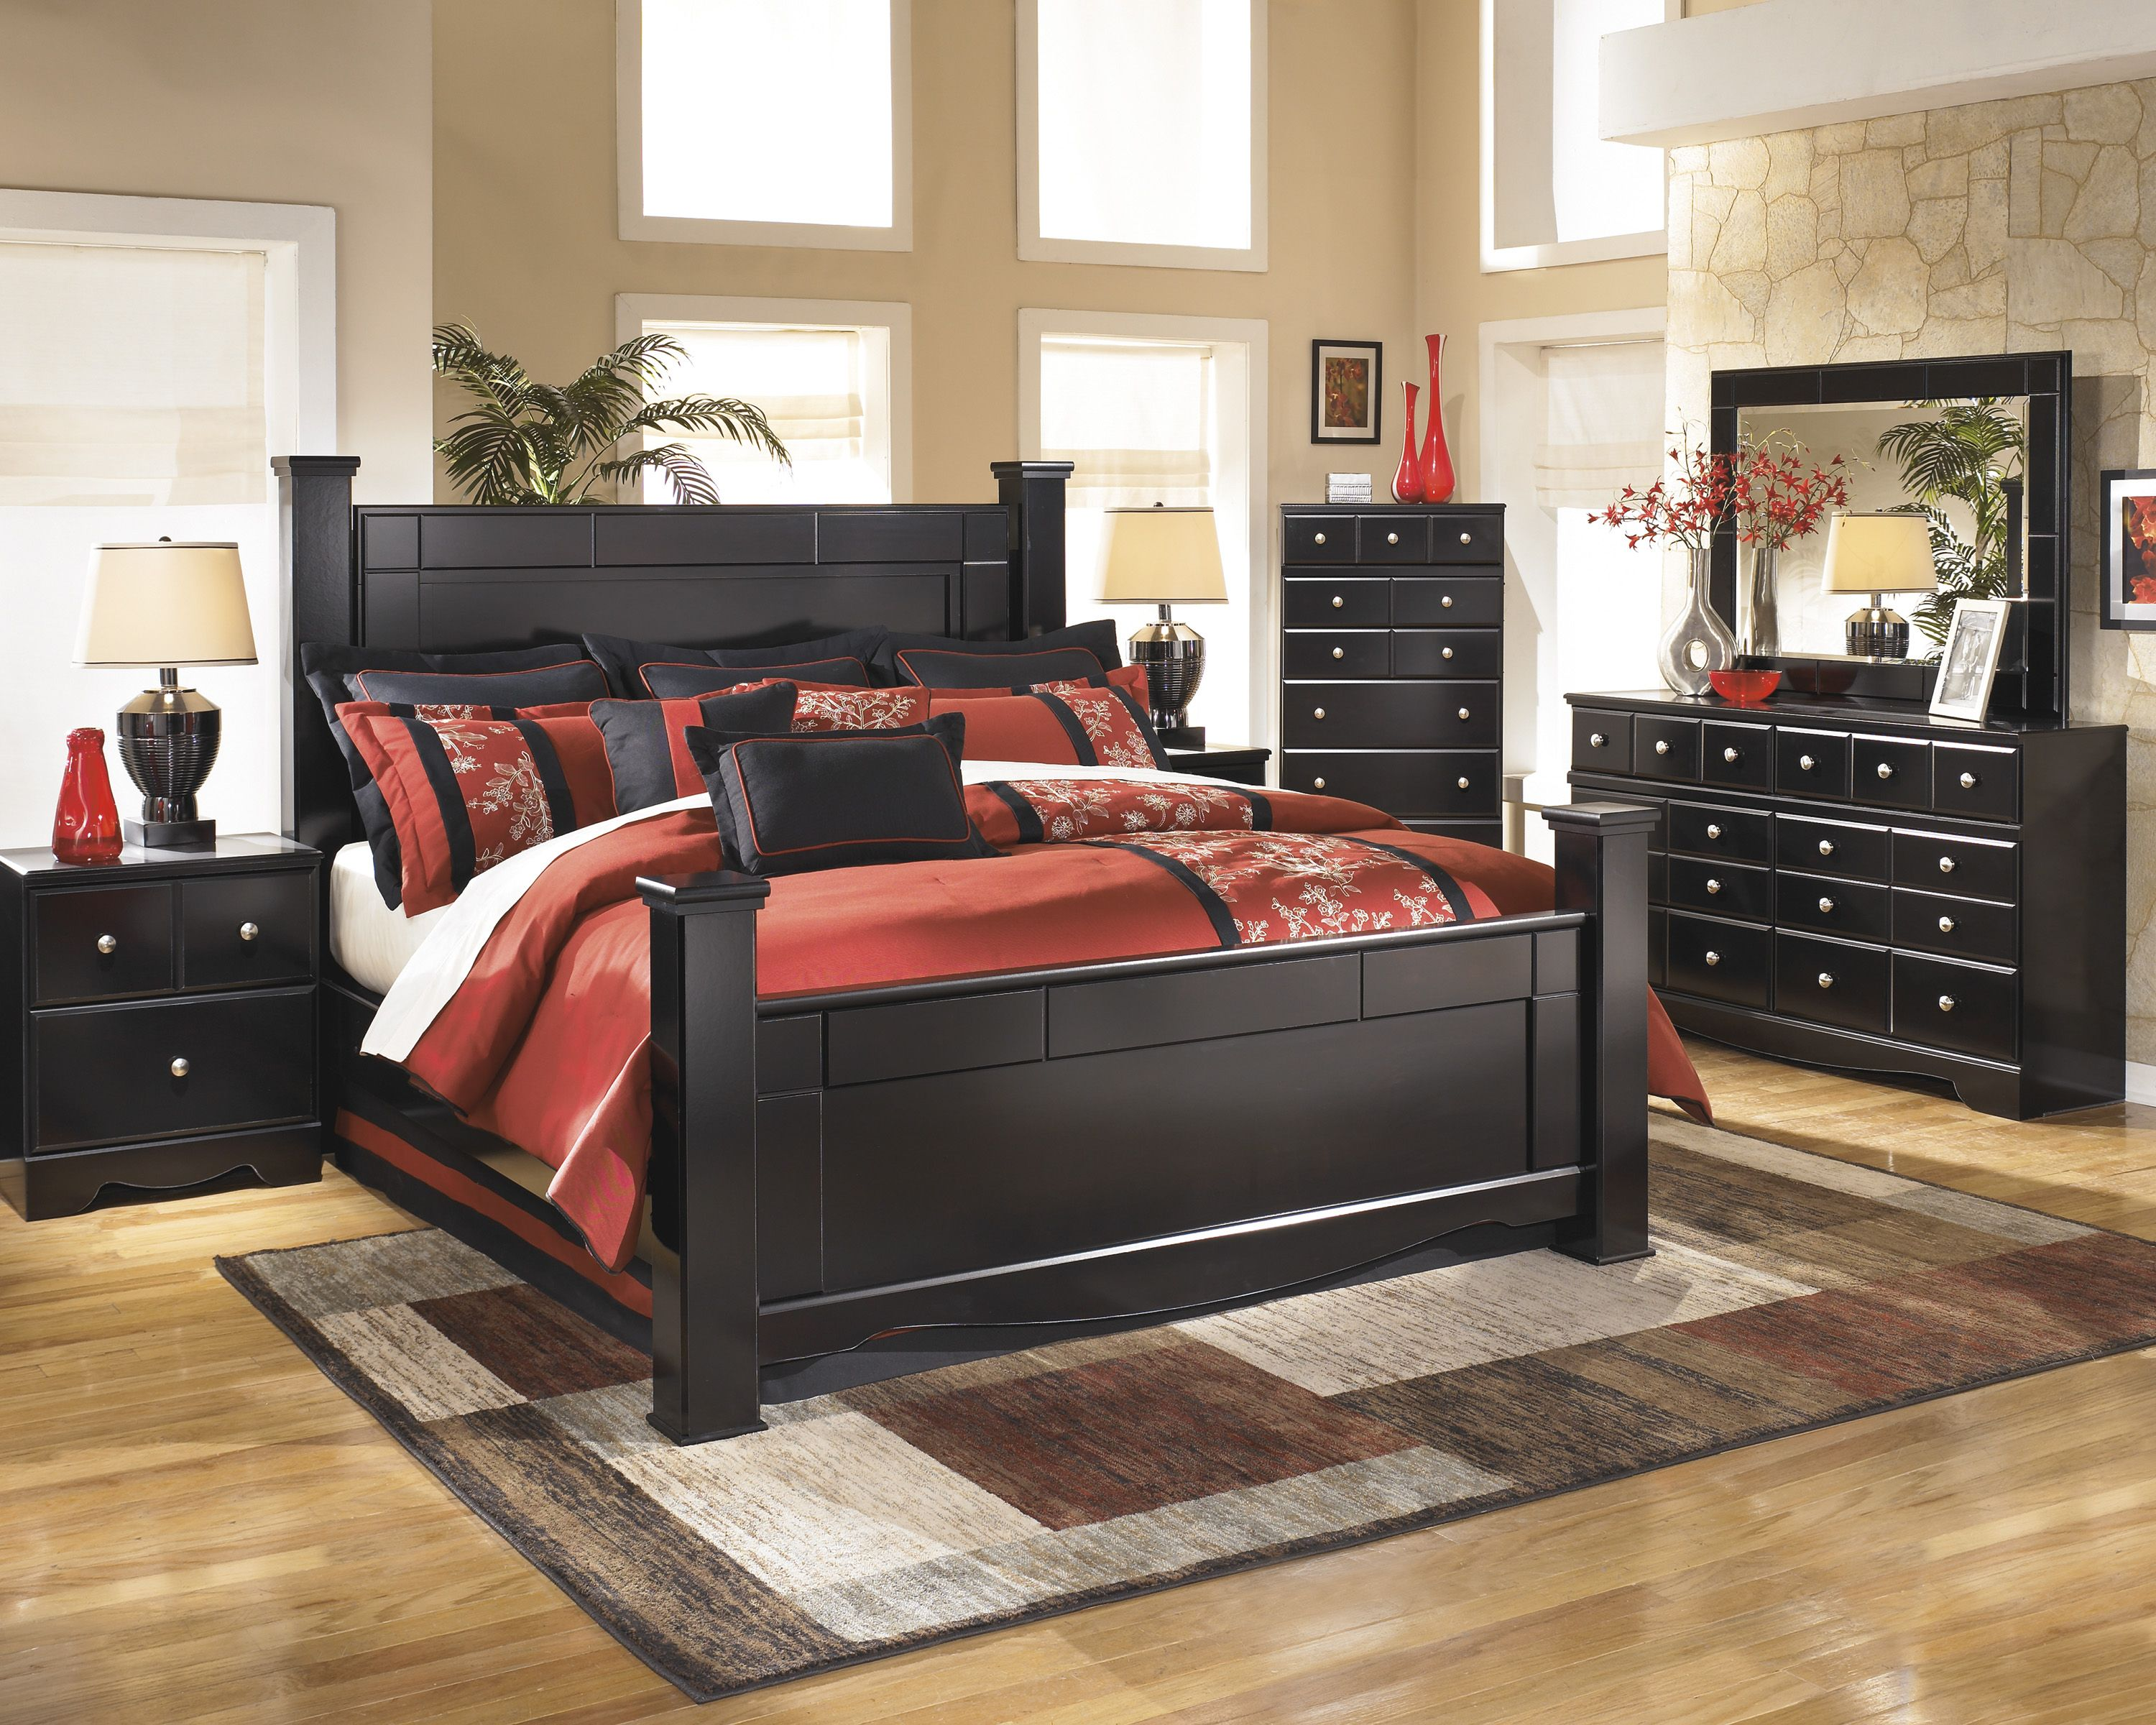 Rent To Own Shay King 6pc Bedroom Financing Shay King 6pc Bedroom Rentals In Canada Ea Cheap Bedroom Sets King Size Bedroom Sets Black Bedroom Furniture Set